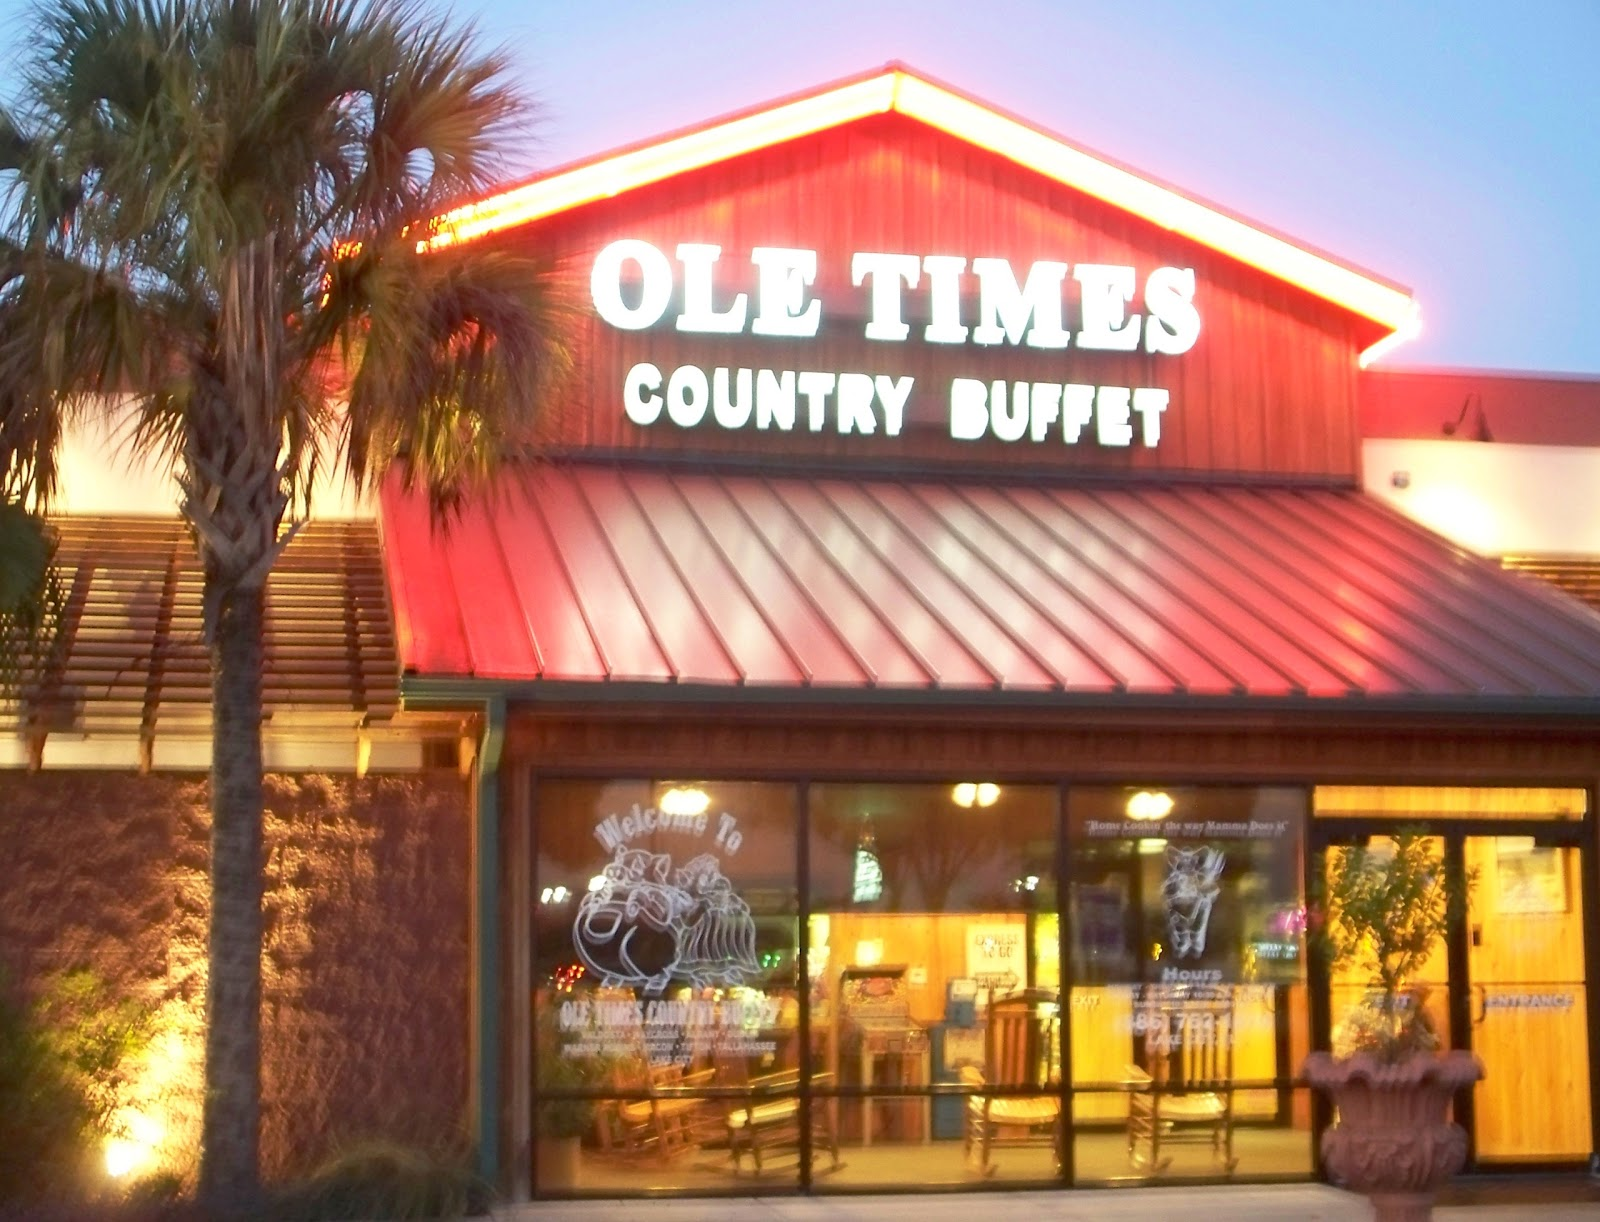 Visit Ole Times Country Buffet for lunch or dinner 7 days a week. Ask about our catering and carryout options. Ask about our catering and carryout options. Take advantage of our senior citizen discounts and special rates for children ages 4 to 9.